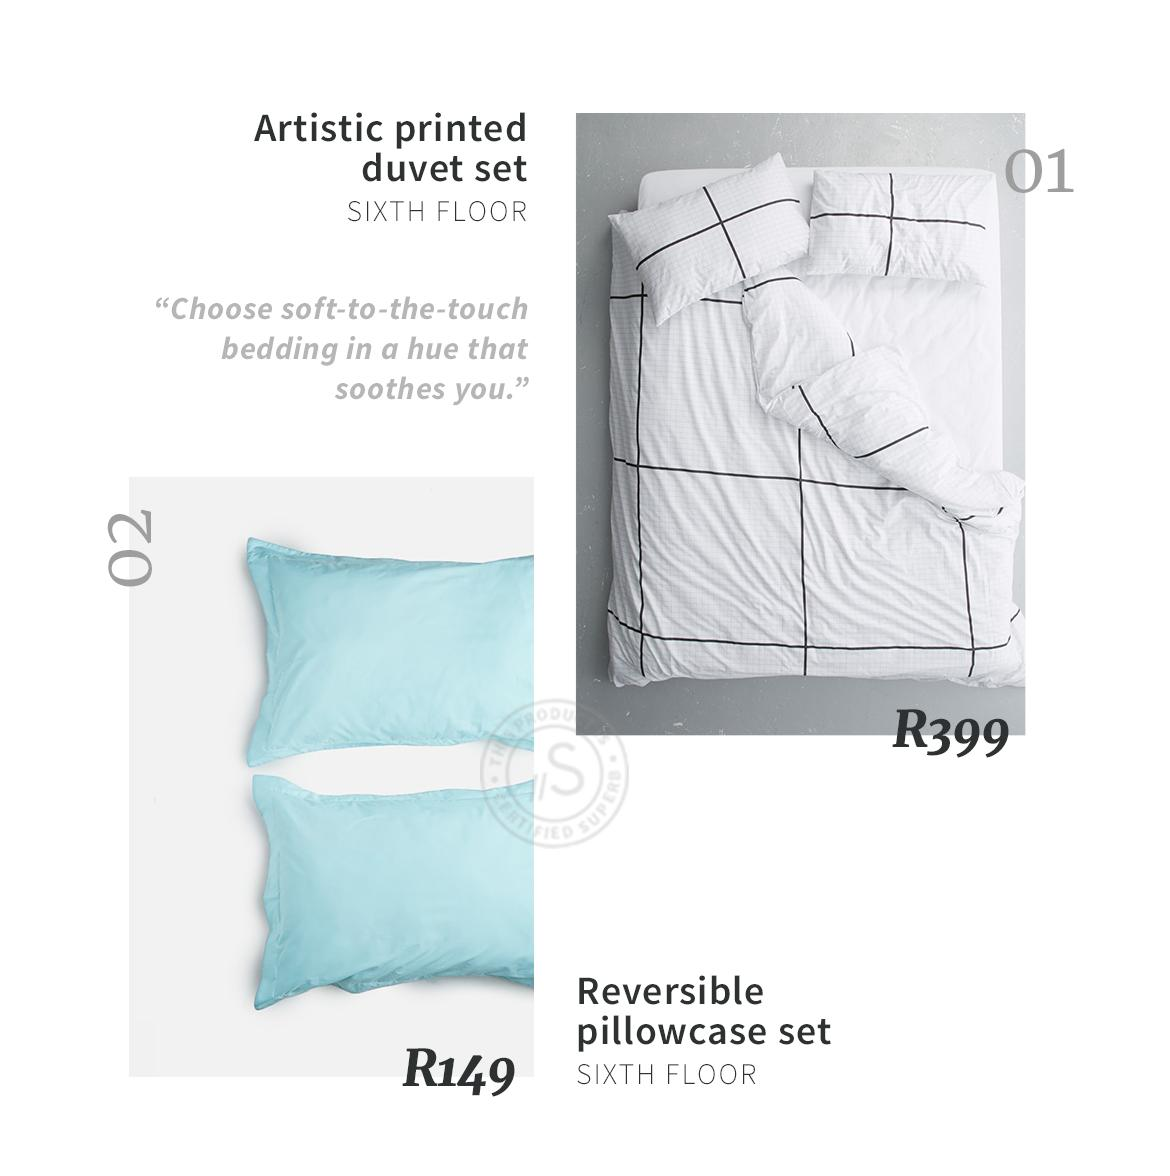 Superbalist duvet set